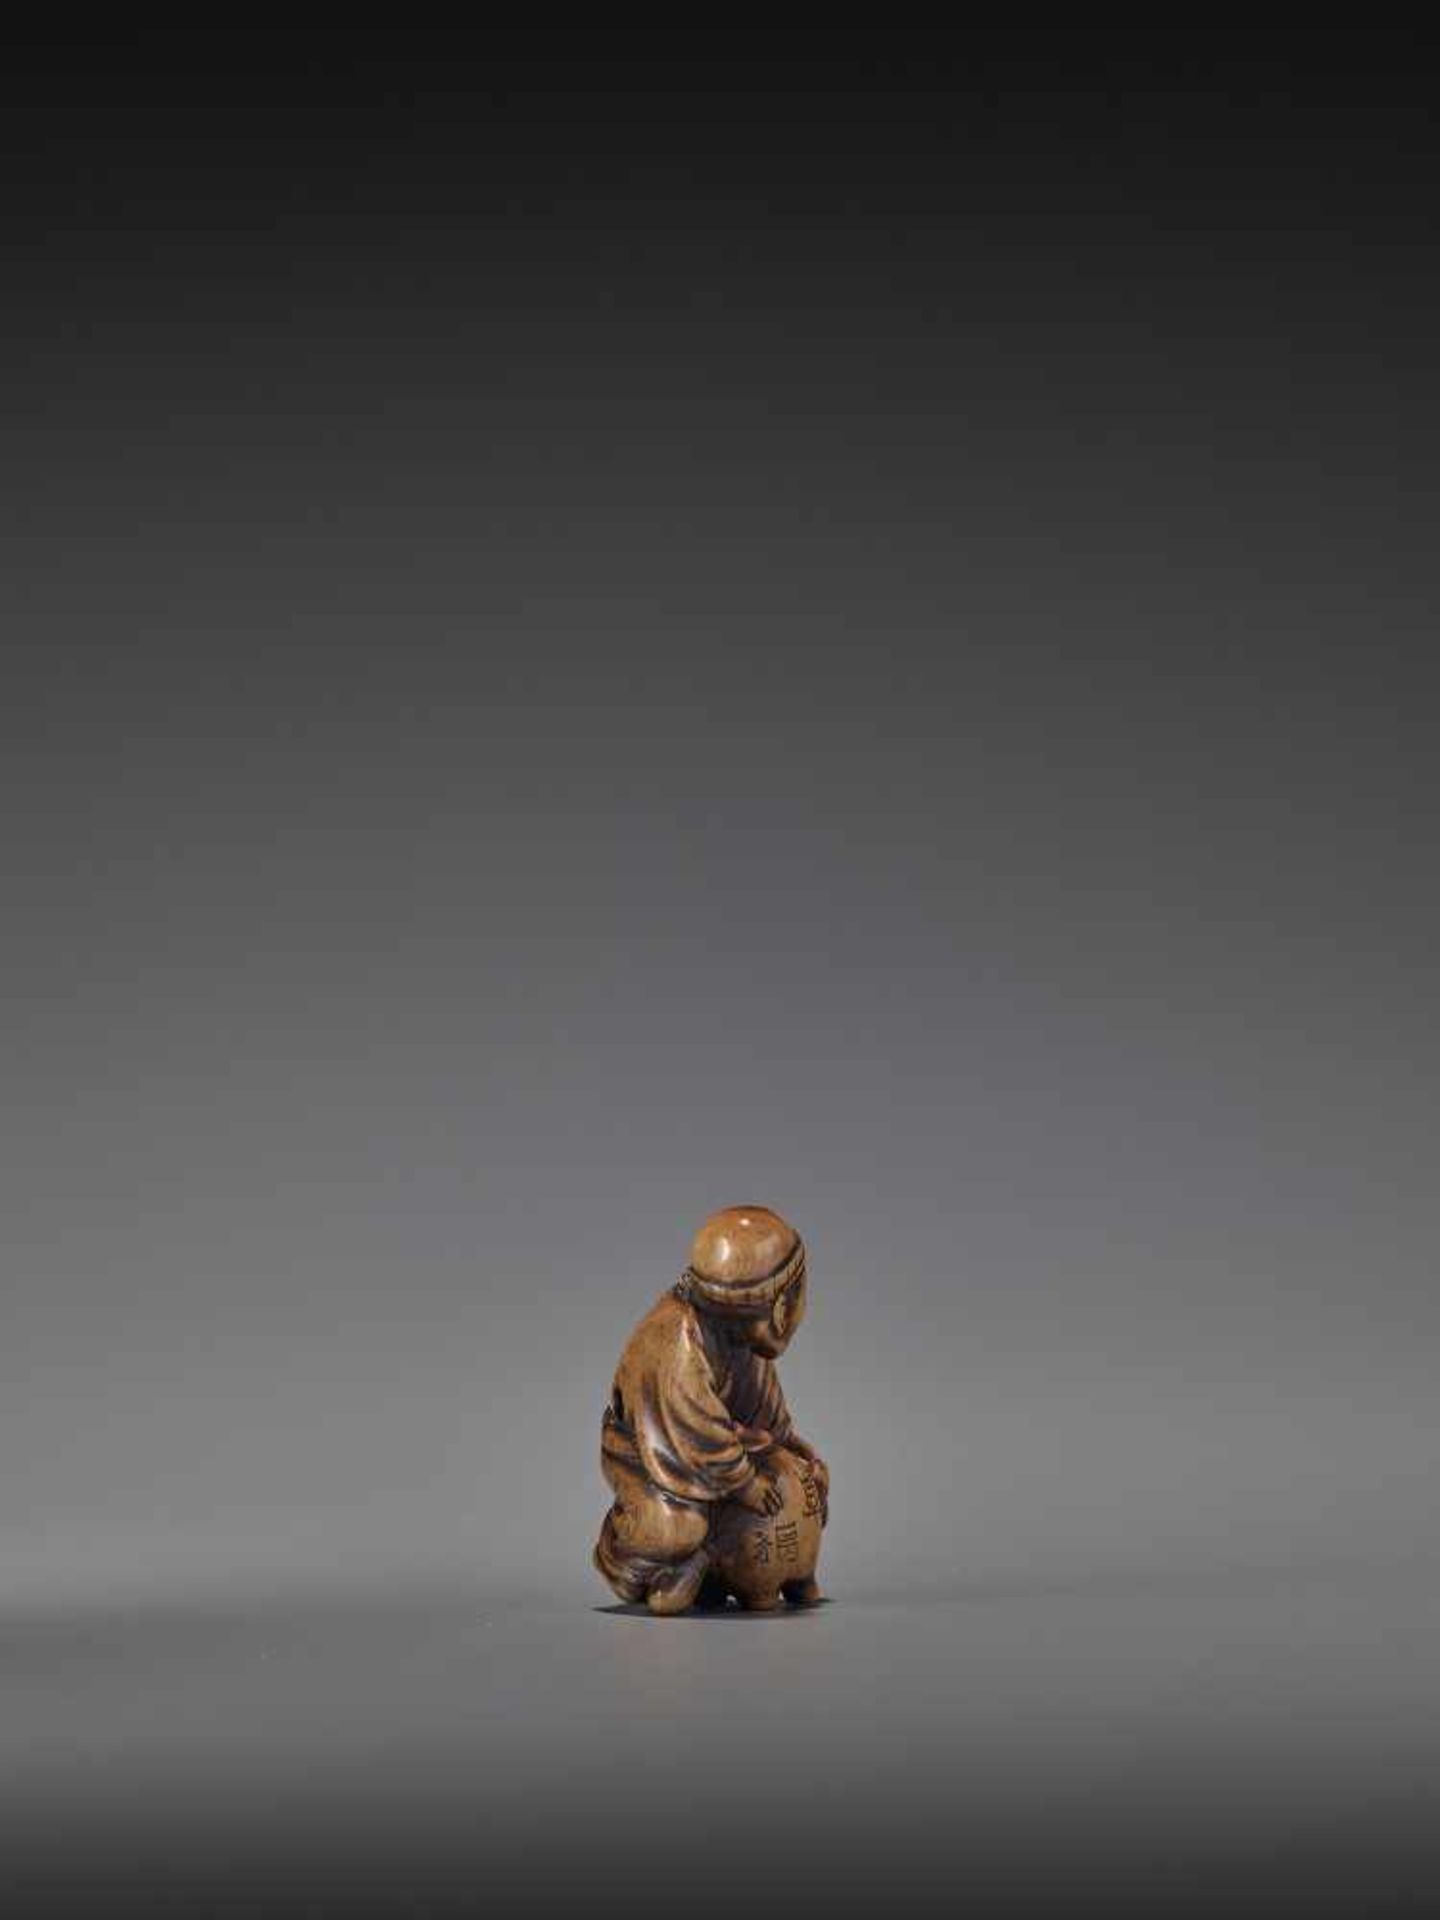 HIDEHISA: A RARE WOOD NETSUKE OF A THIEF STEALING THE MAGIC TANUKI KETTLE By Hidehisa, signed - Image 8 of 12